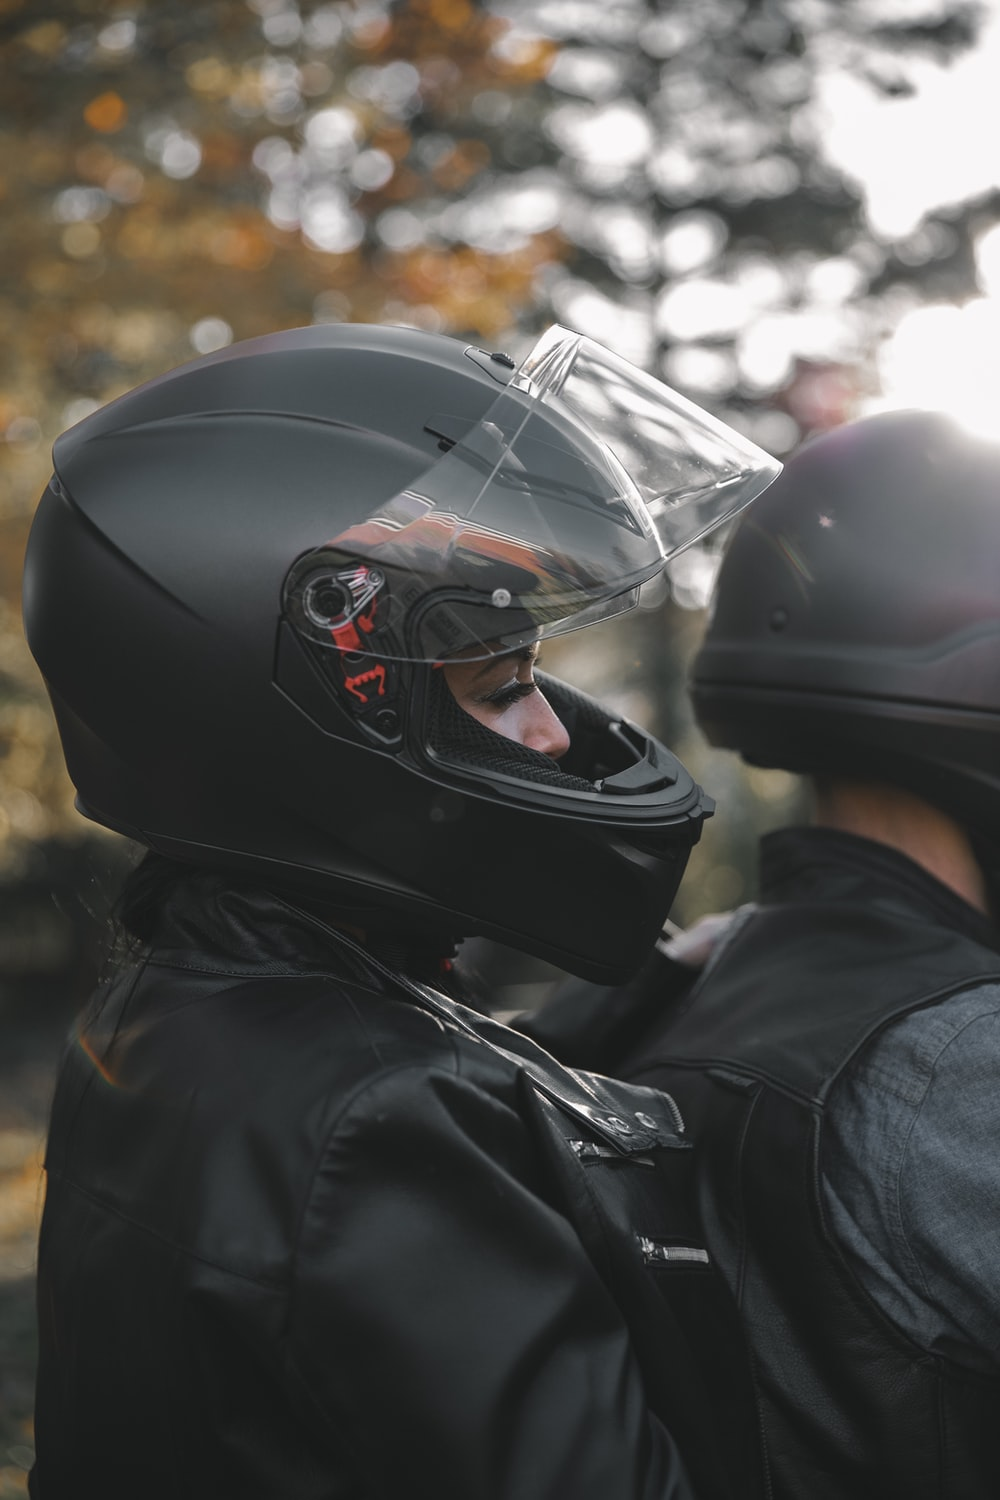 person wearing black helmet and black jacket